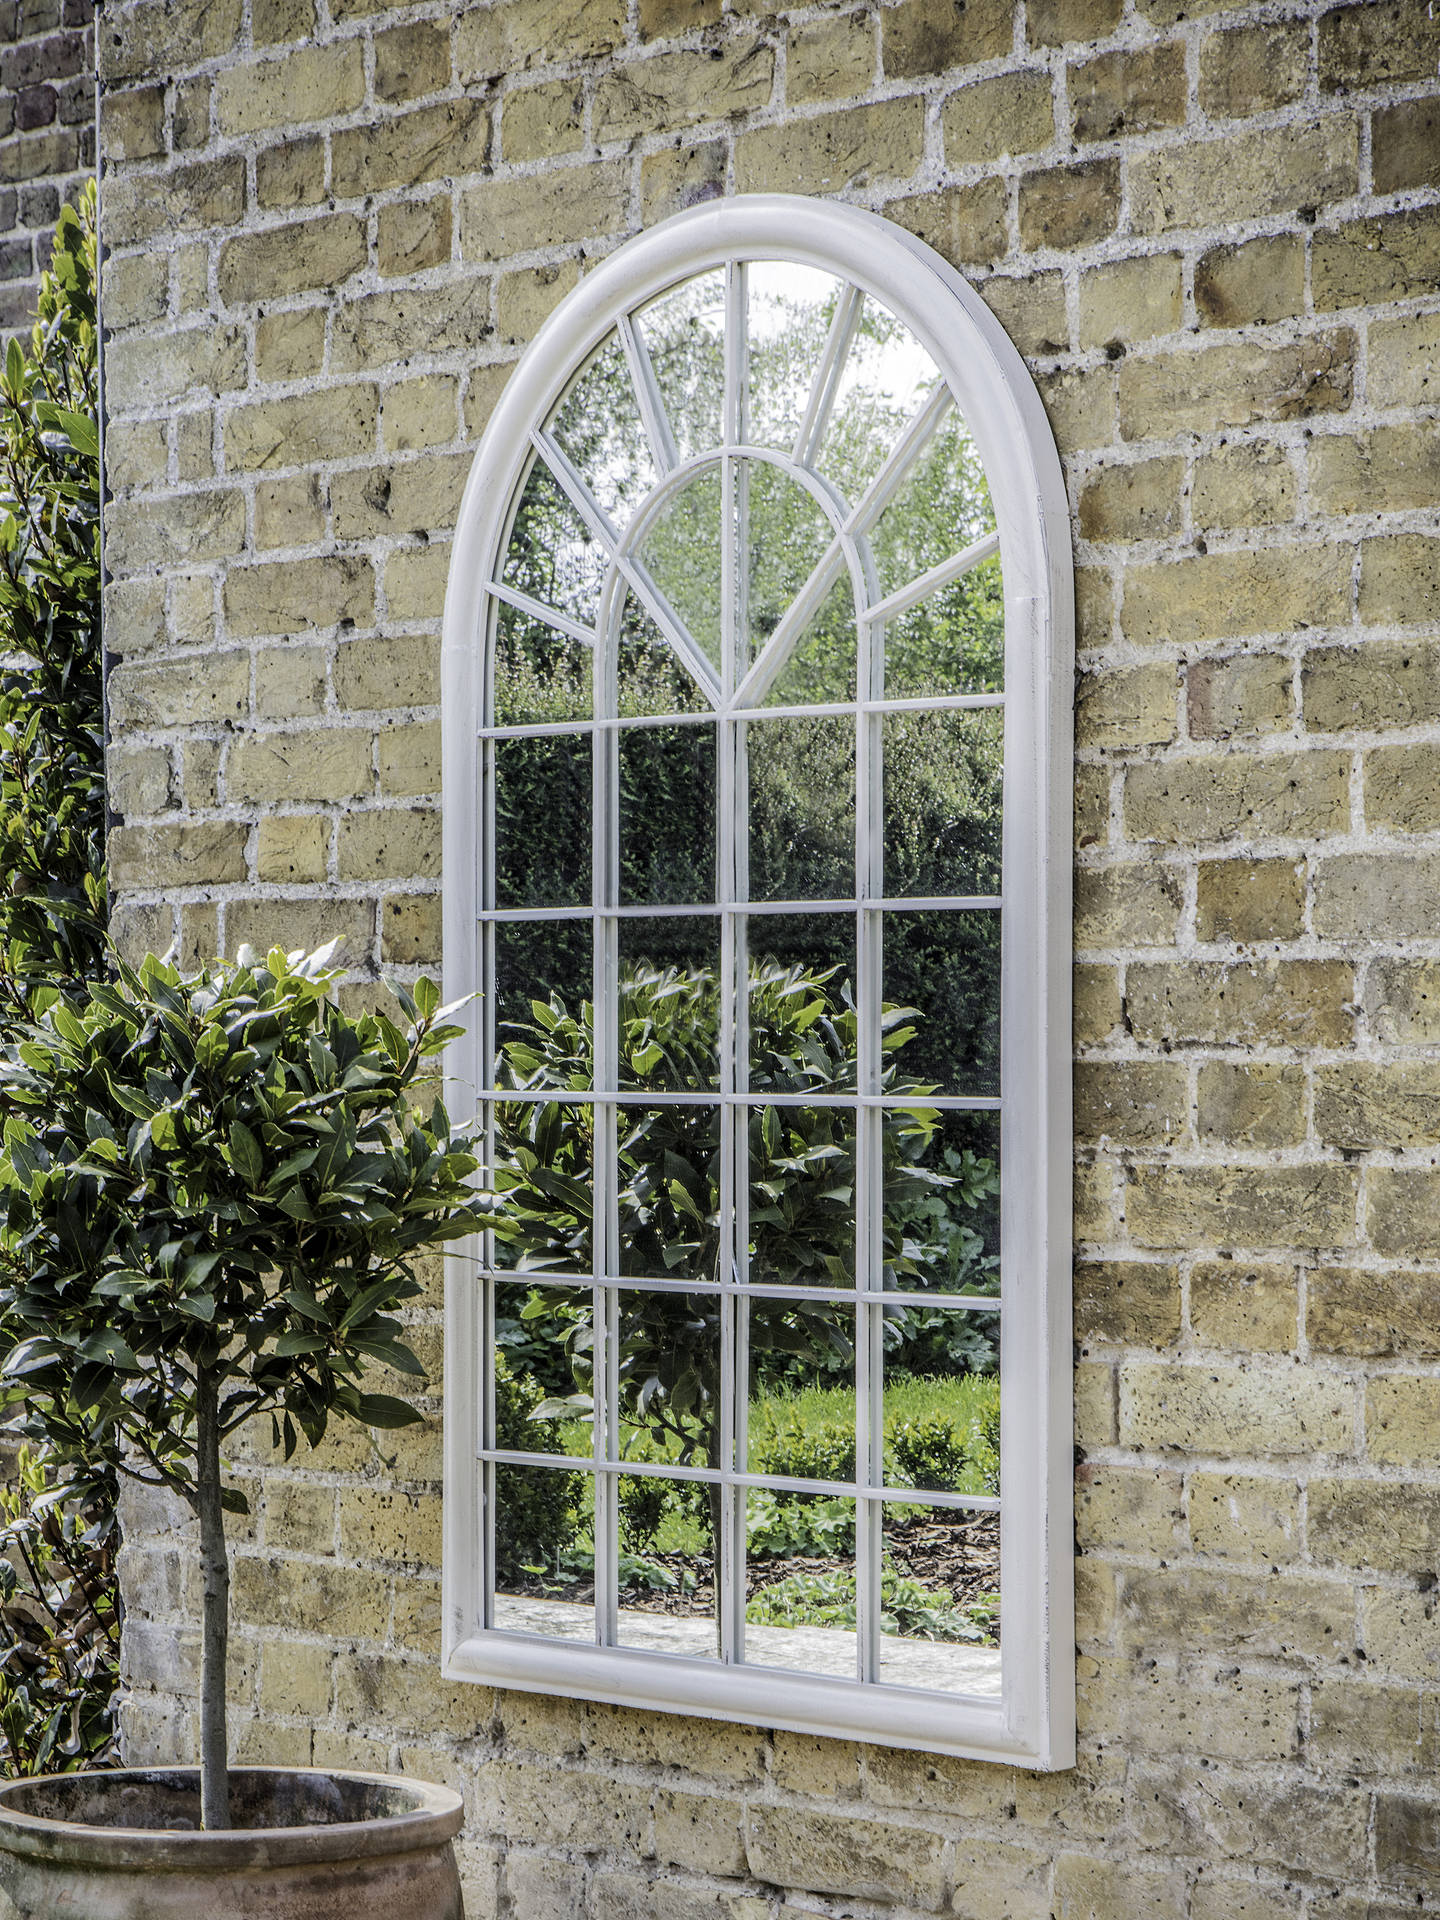 Buy Fura Outdoor Garden Wall Window Style Arched Mirror, 131 x 75cm, Antique Cream Online at johnlewis.com